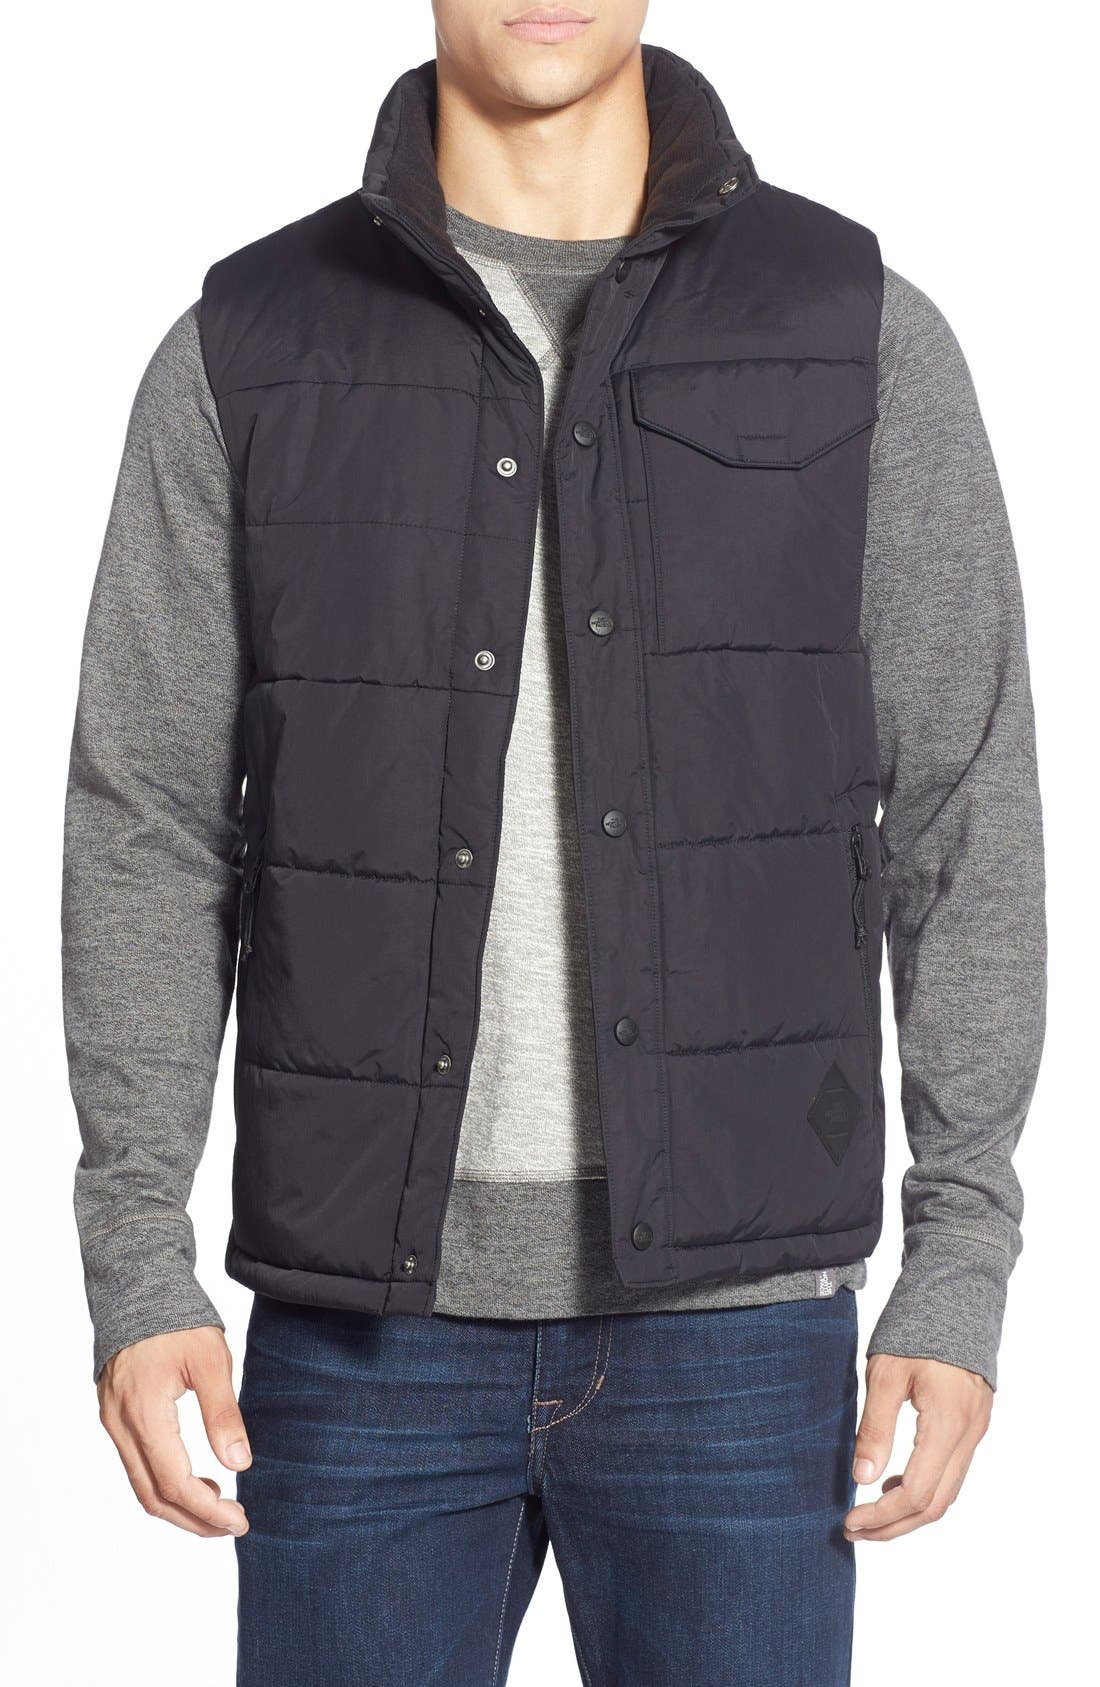 'Patrick's Point' Quilted Vest,                             Main thumbnail 1, color,                             001